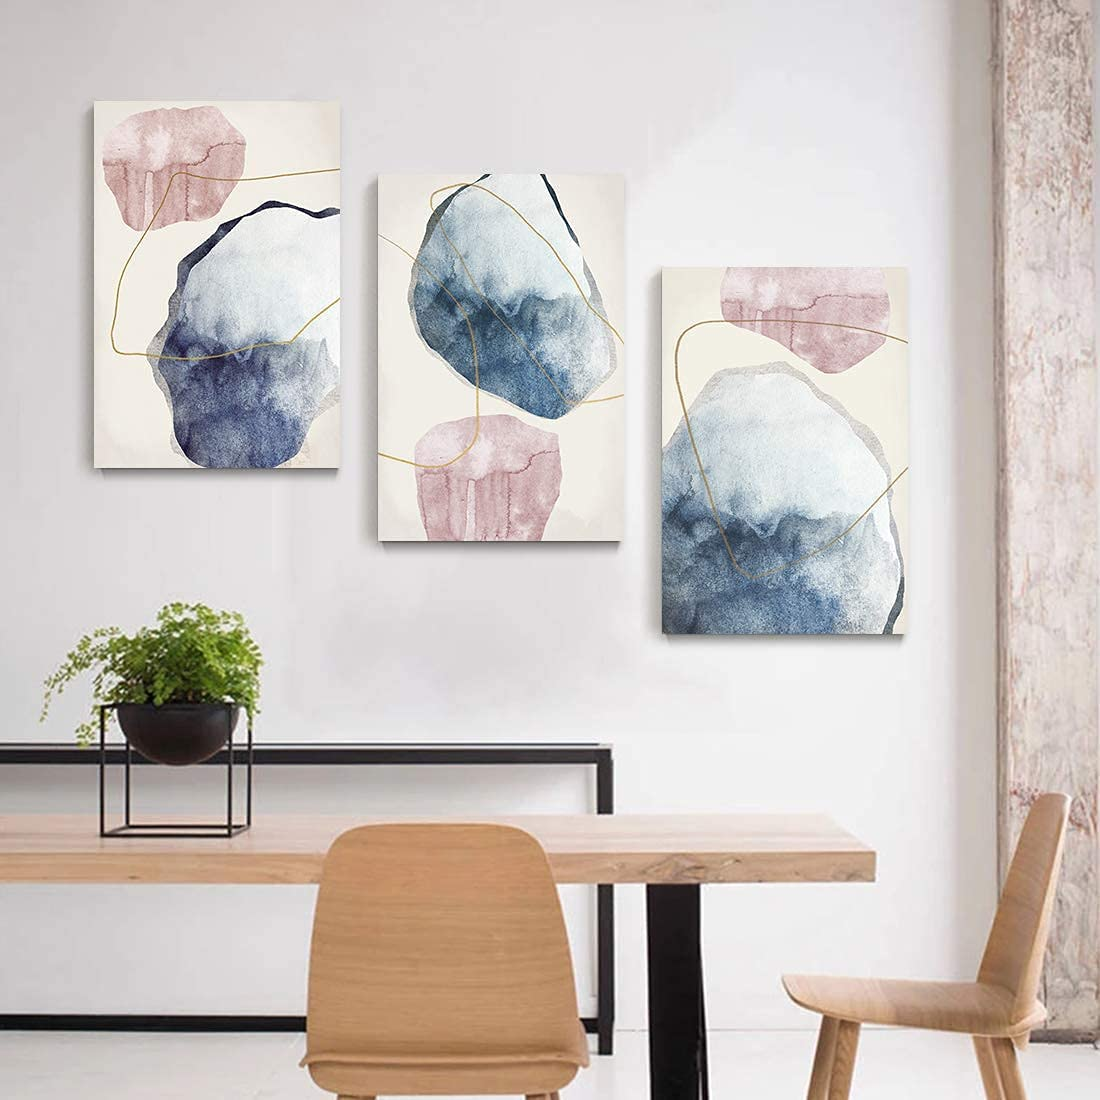 Loomarte Large Abstract Wall Art Paintings Pink Blue Marble Wall Decor Geometric Graphic Canvas Print Modern Artwork for Living Room Bedroom Bathroom Home Office Wall Decor 3 Pcs 16